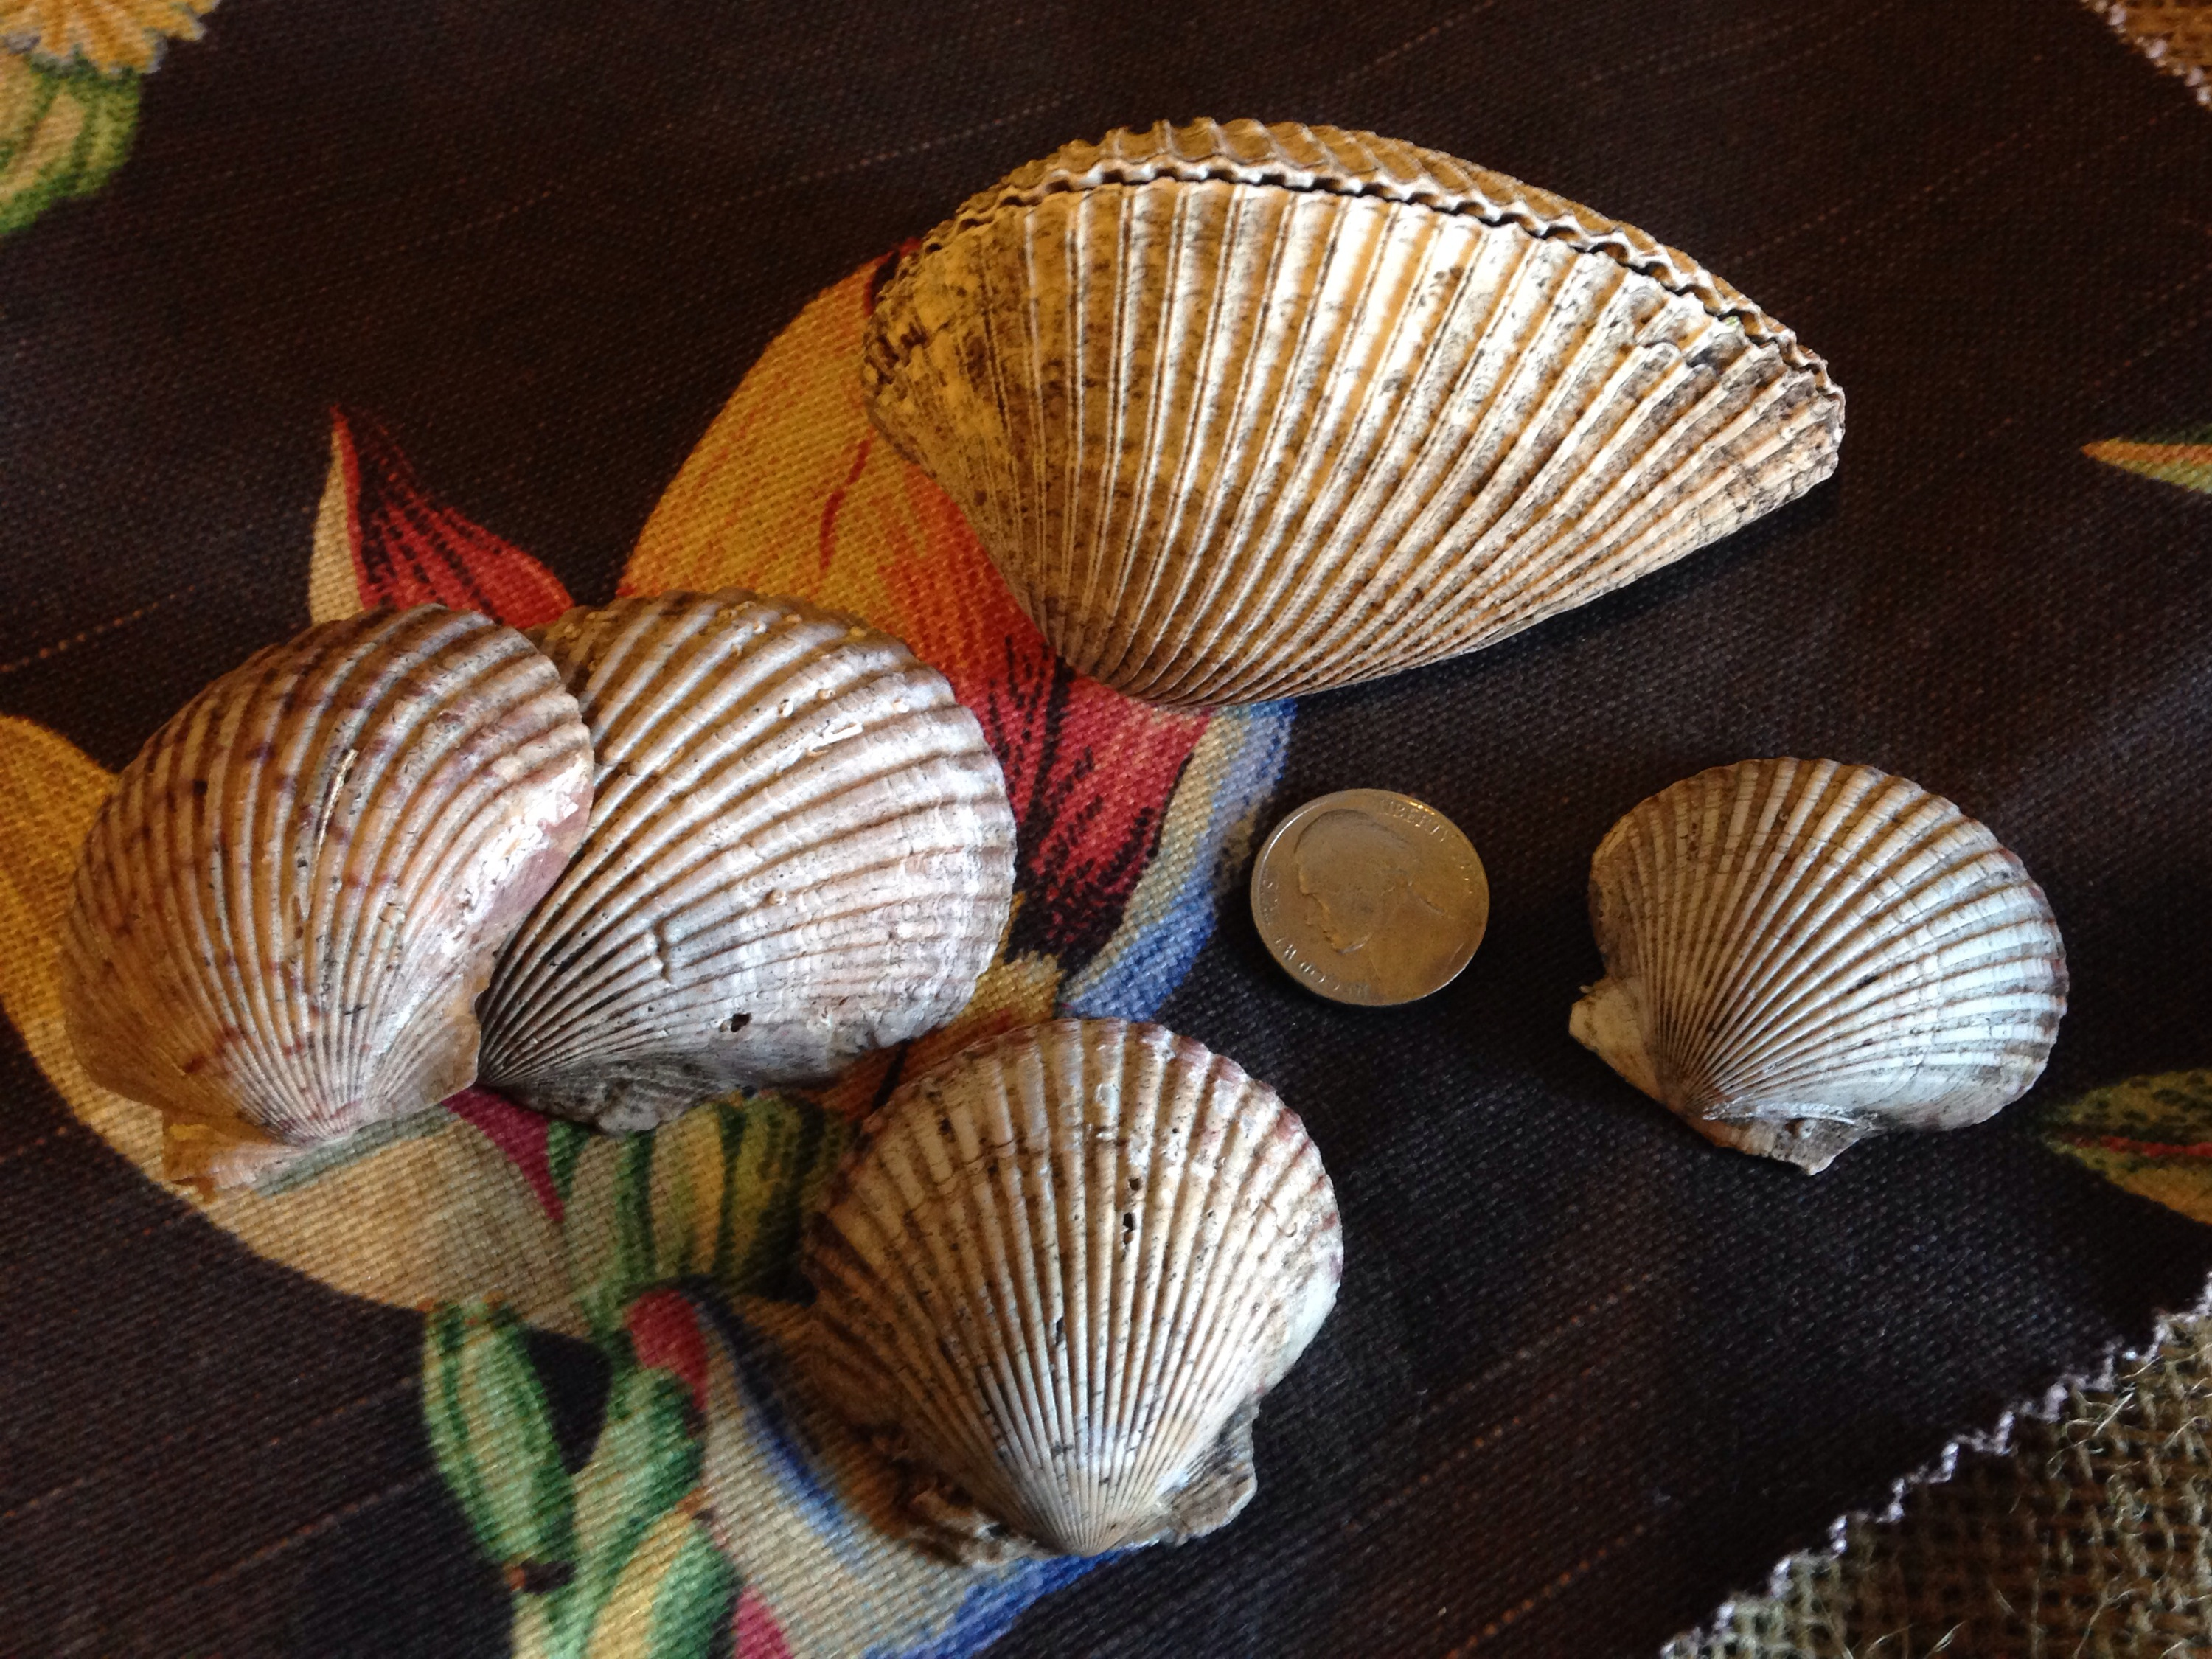 The scallop shell a symbol of pilgrimage haiku house all along the pilgrims path there are symbols of the scallop shell to indicate your going the right way biocorpaavc Image collections